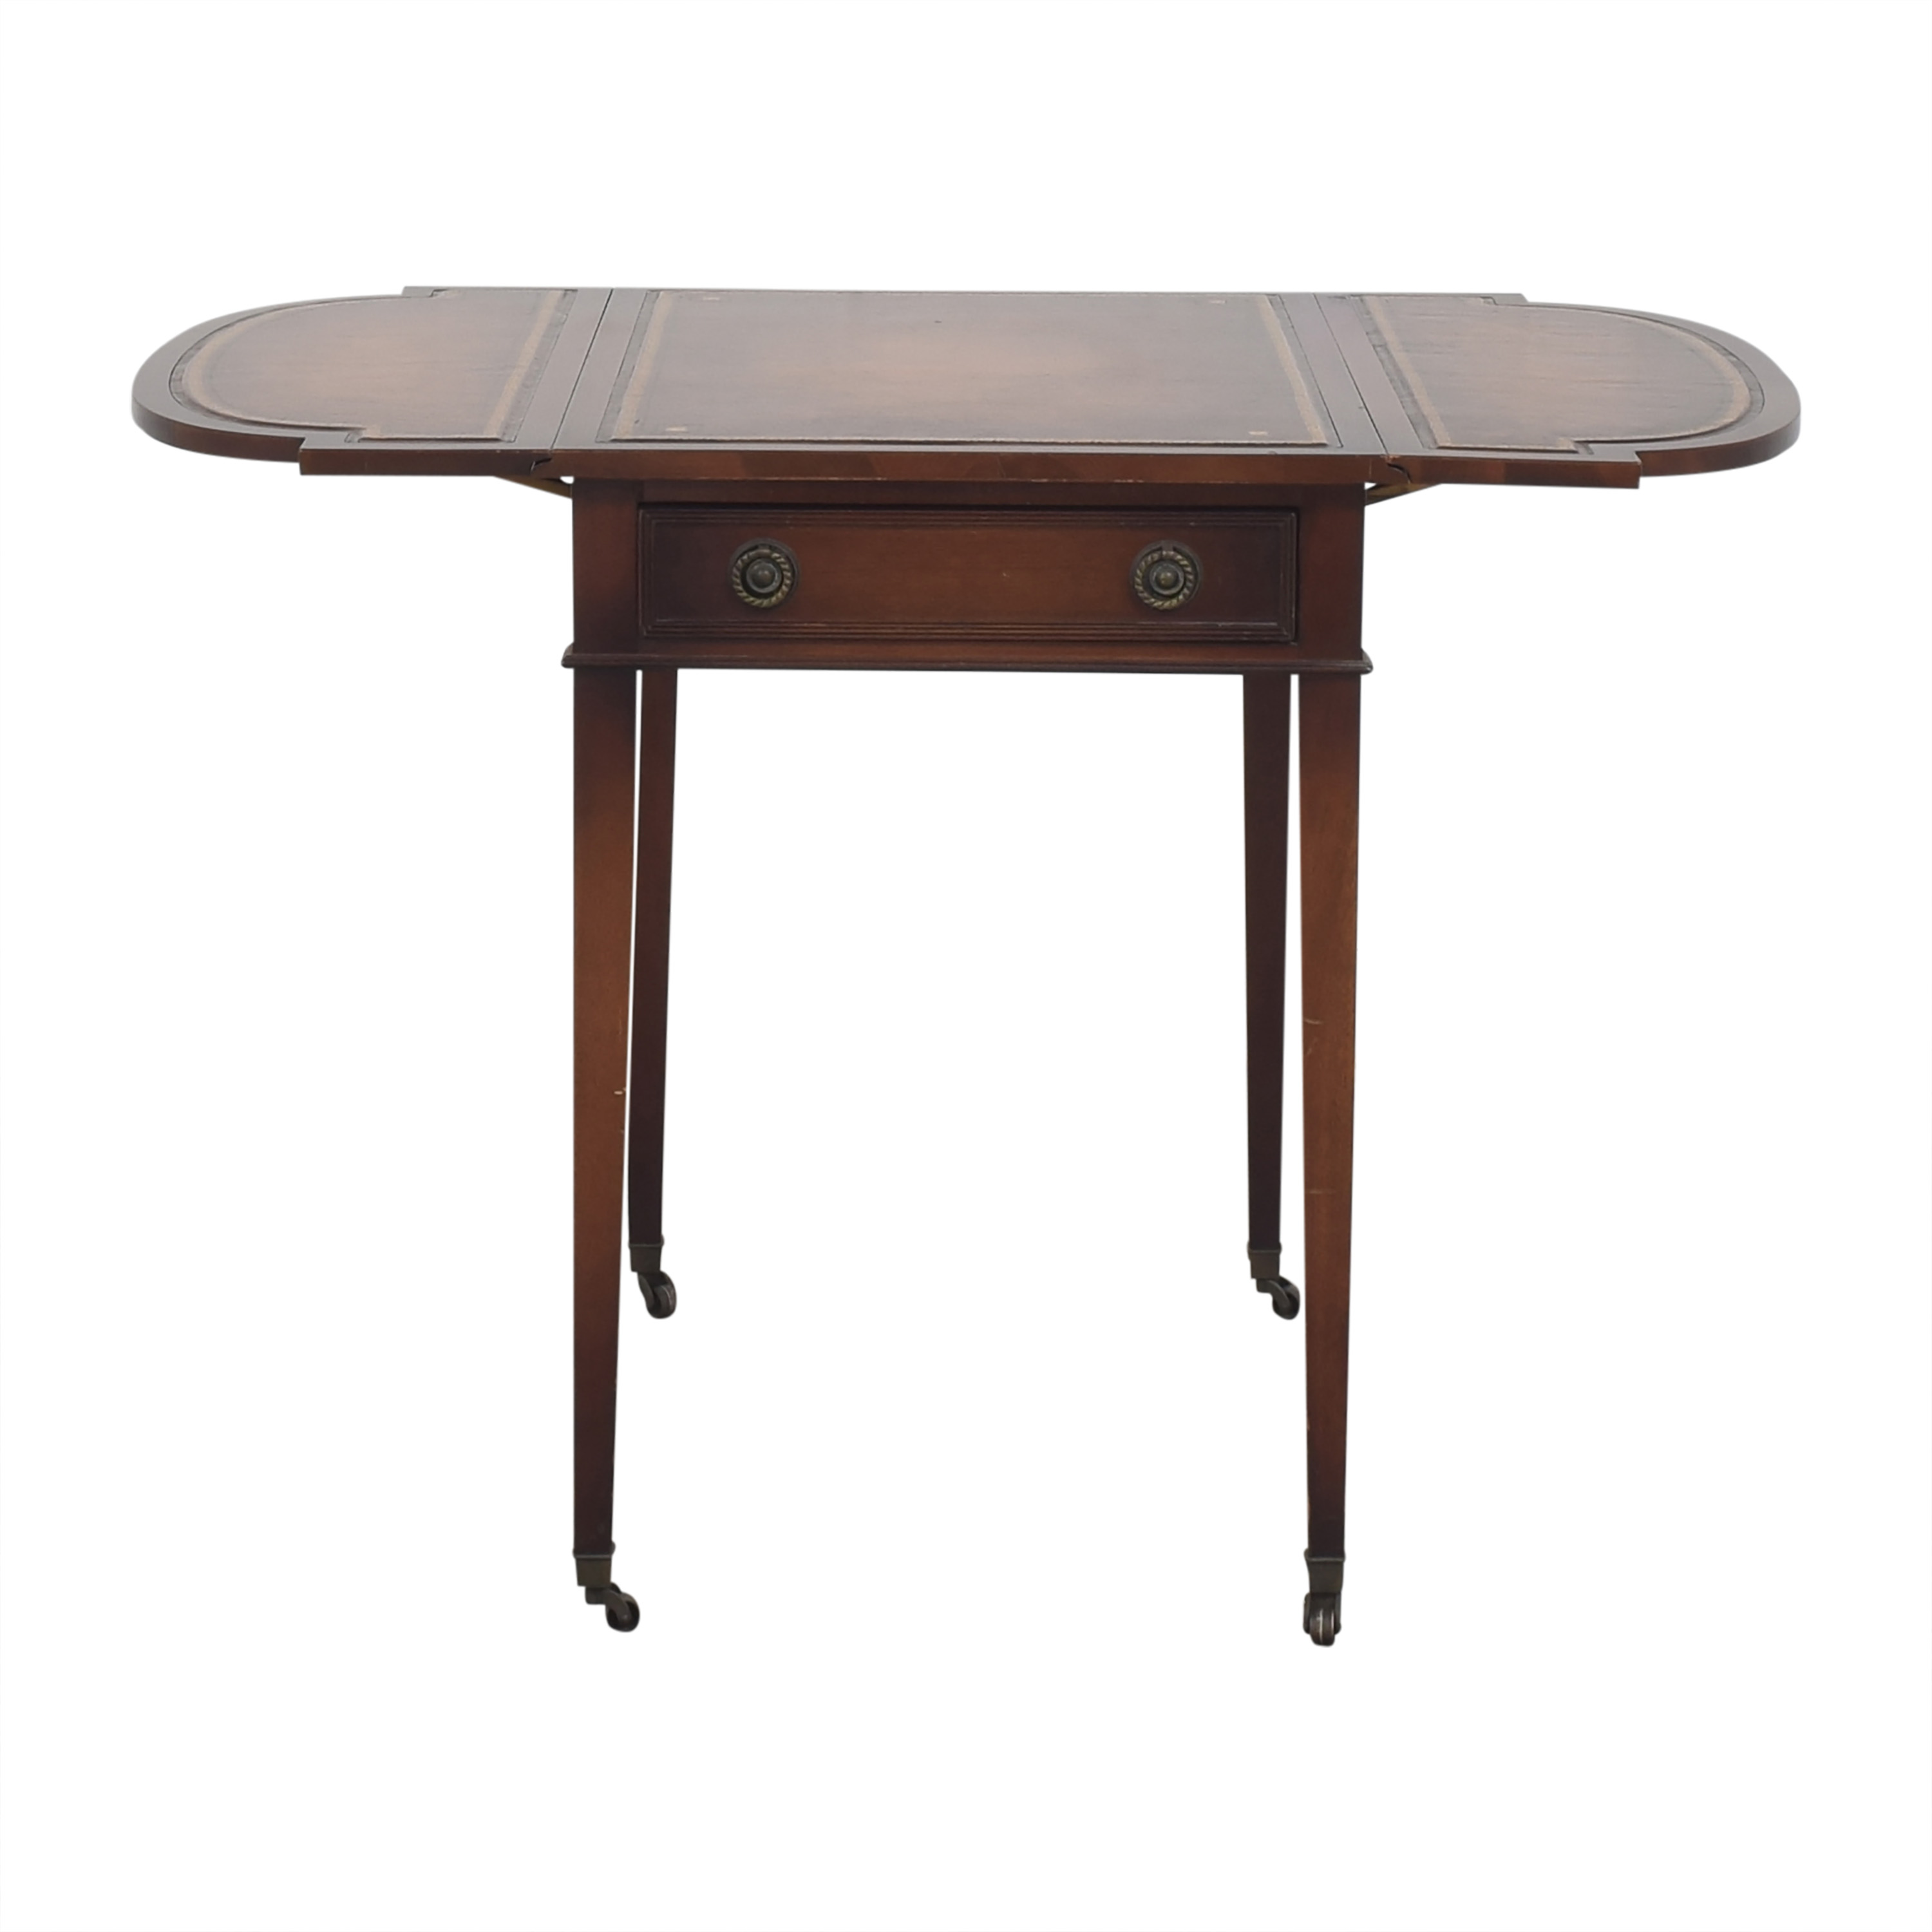 Gordon's Furniture Gordon's Drop-Leaf Accent Table ct